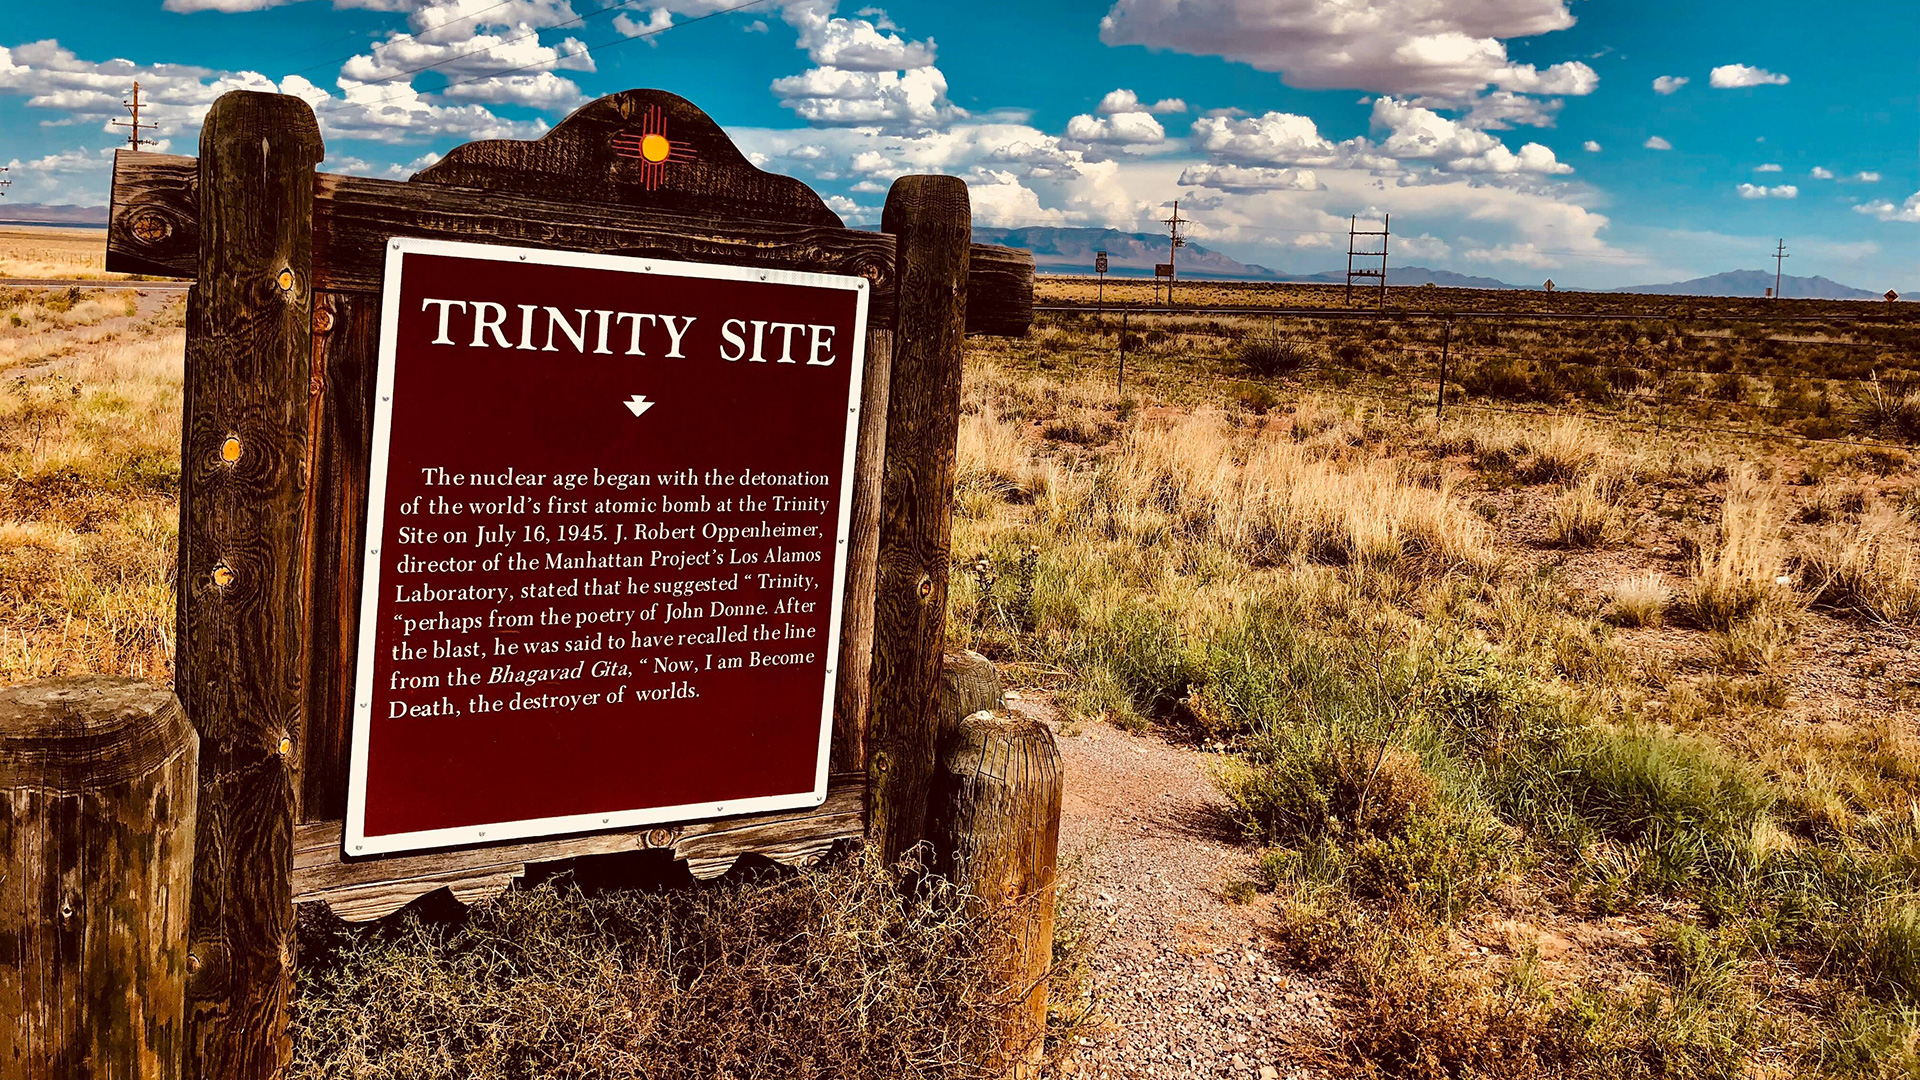 Museum's Trinity Site Tour Now Taking Reservations